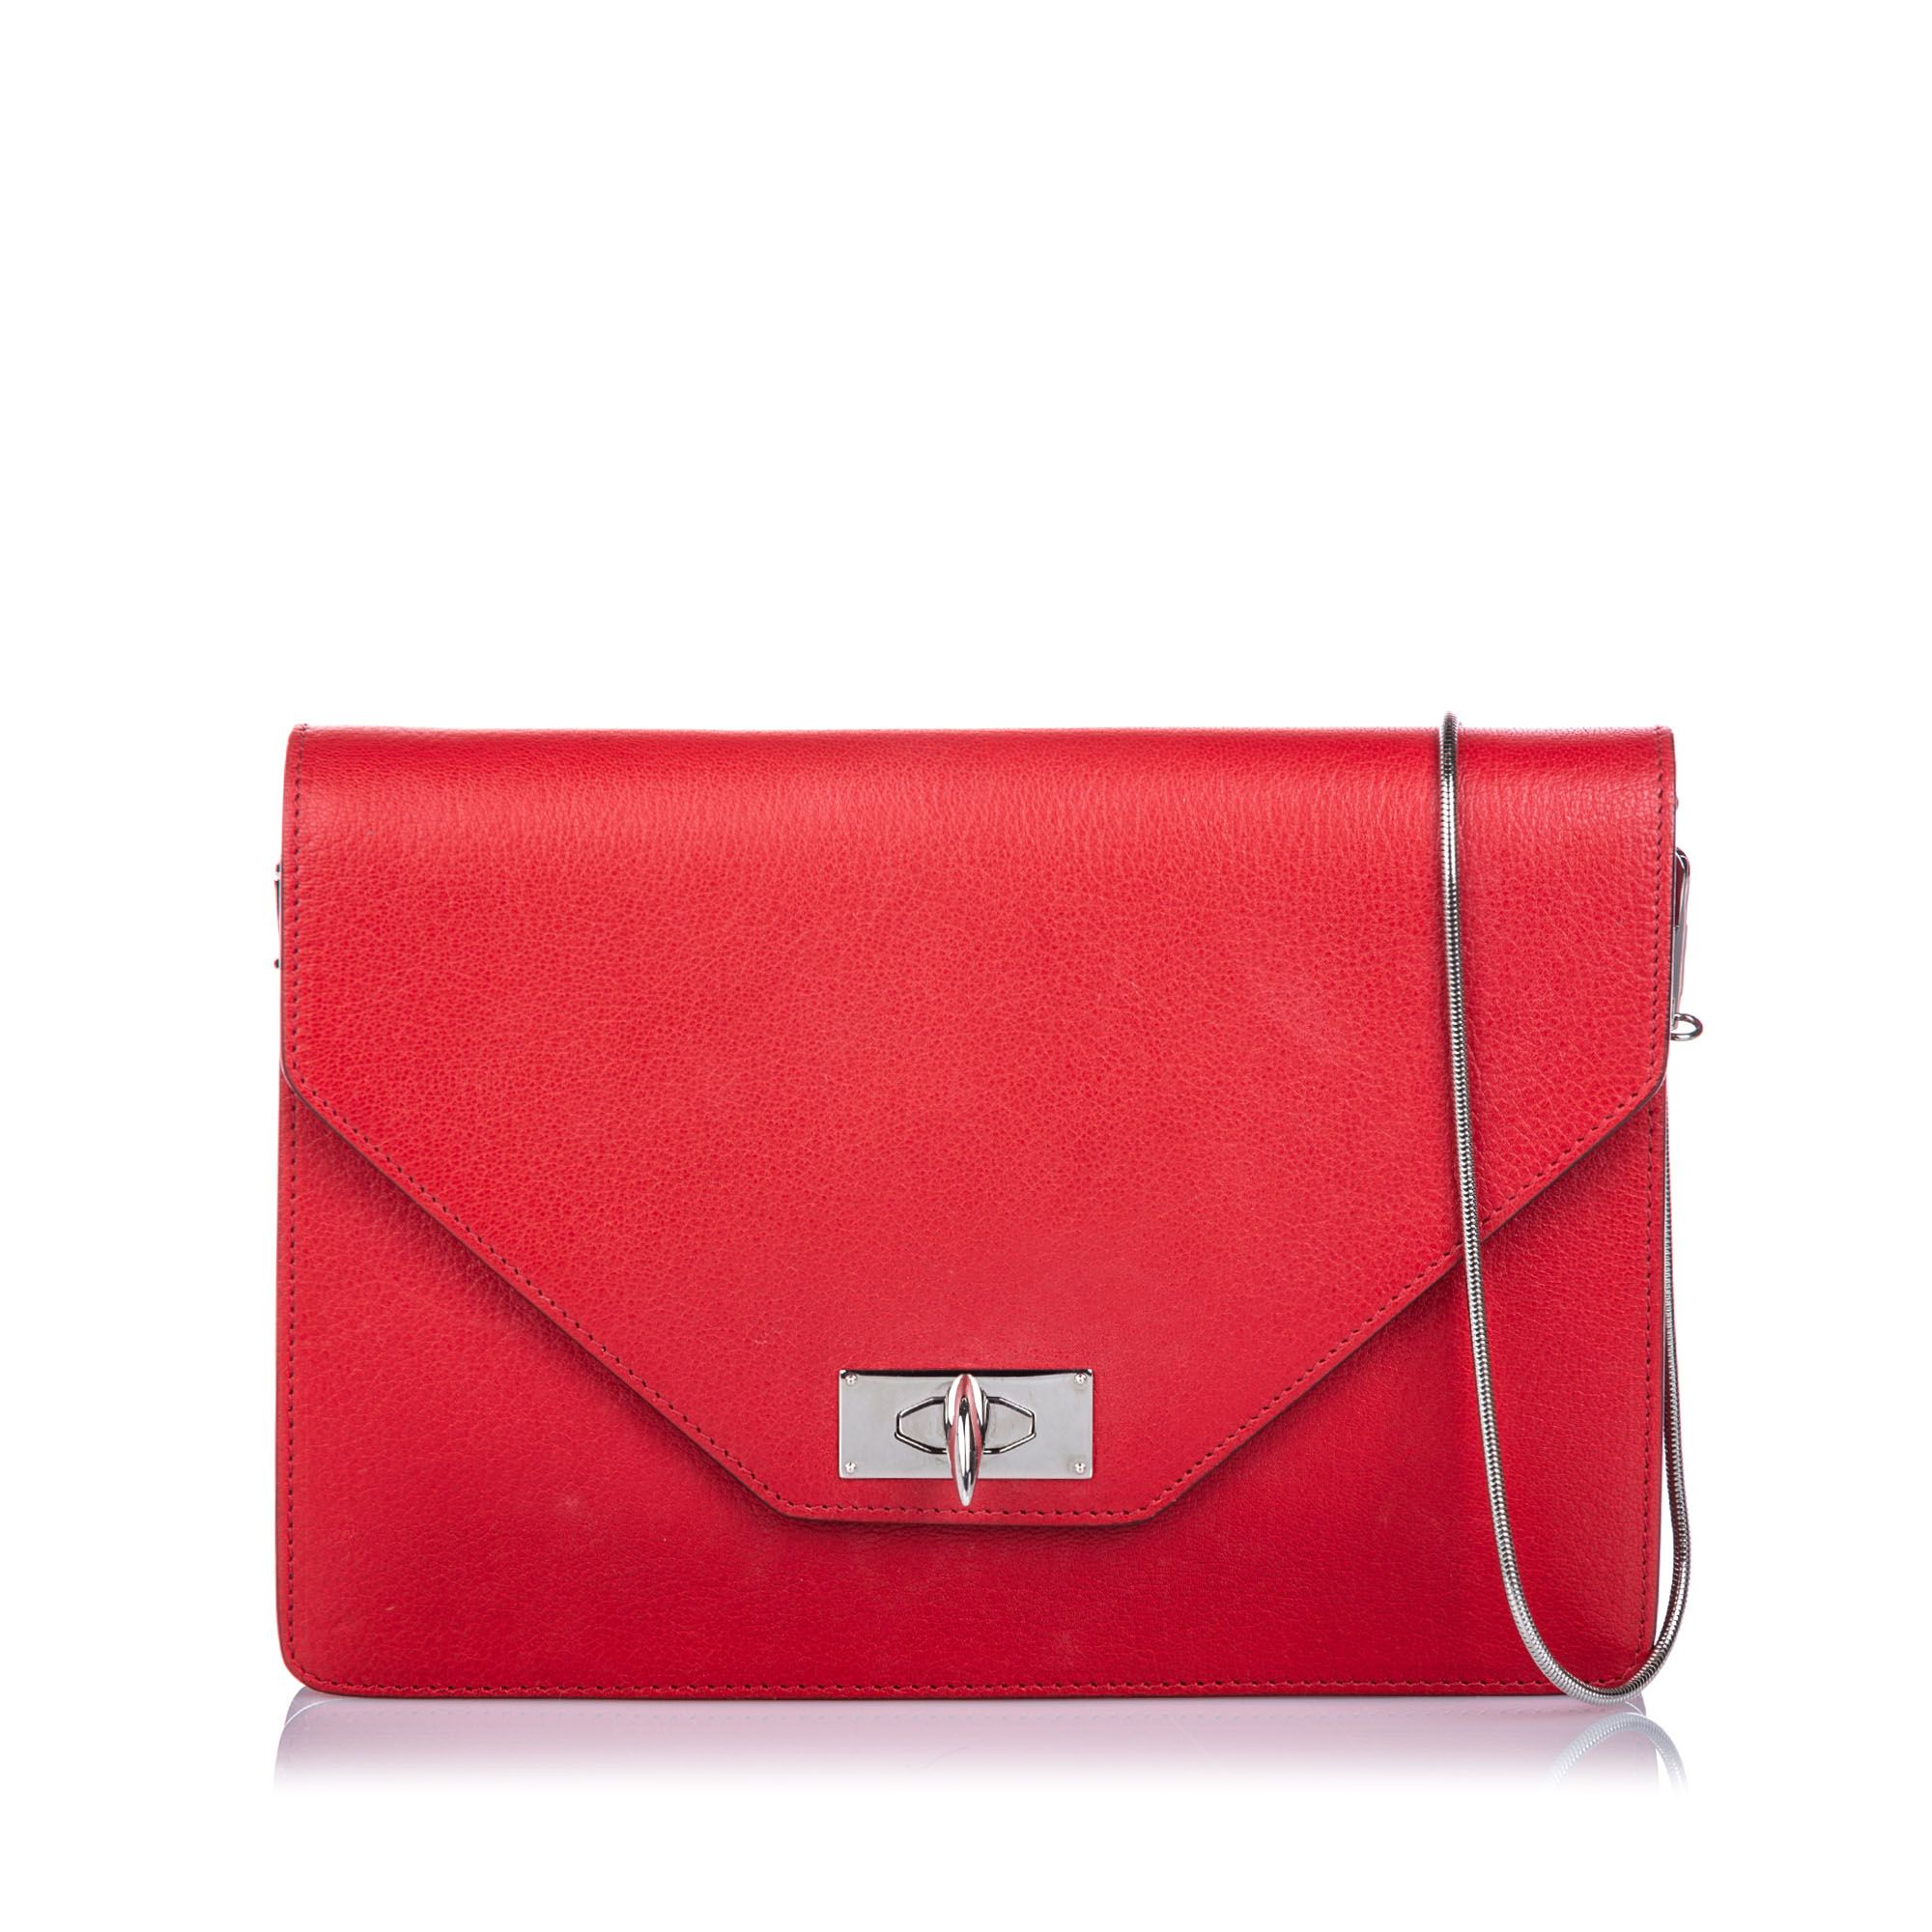 Vintage Givenchy Shark Tooth Crossbody Bag Red